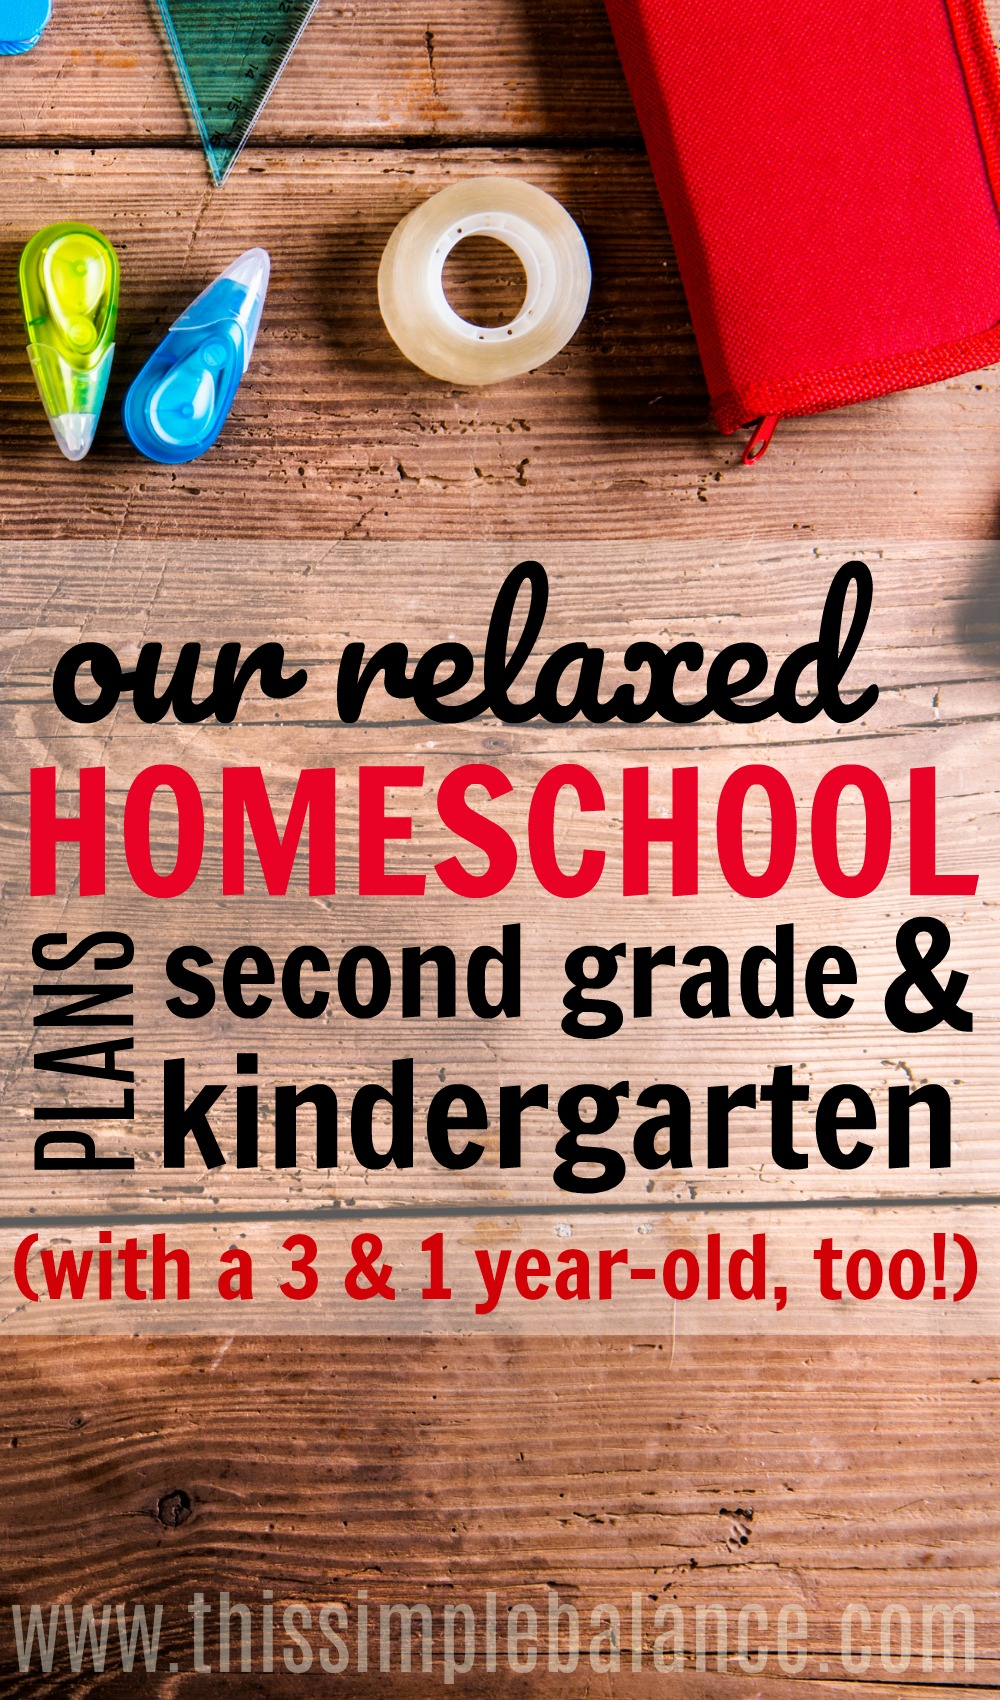 If you are going to homeschool second grade (with a kindergartener along for the ride), get ideas for 2nd grade homeschool curriculum, schedule and more! (from a relaxed homeschooling perspective)